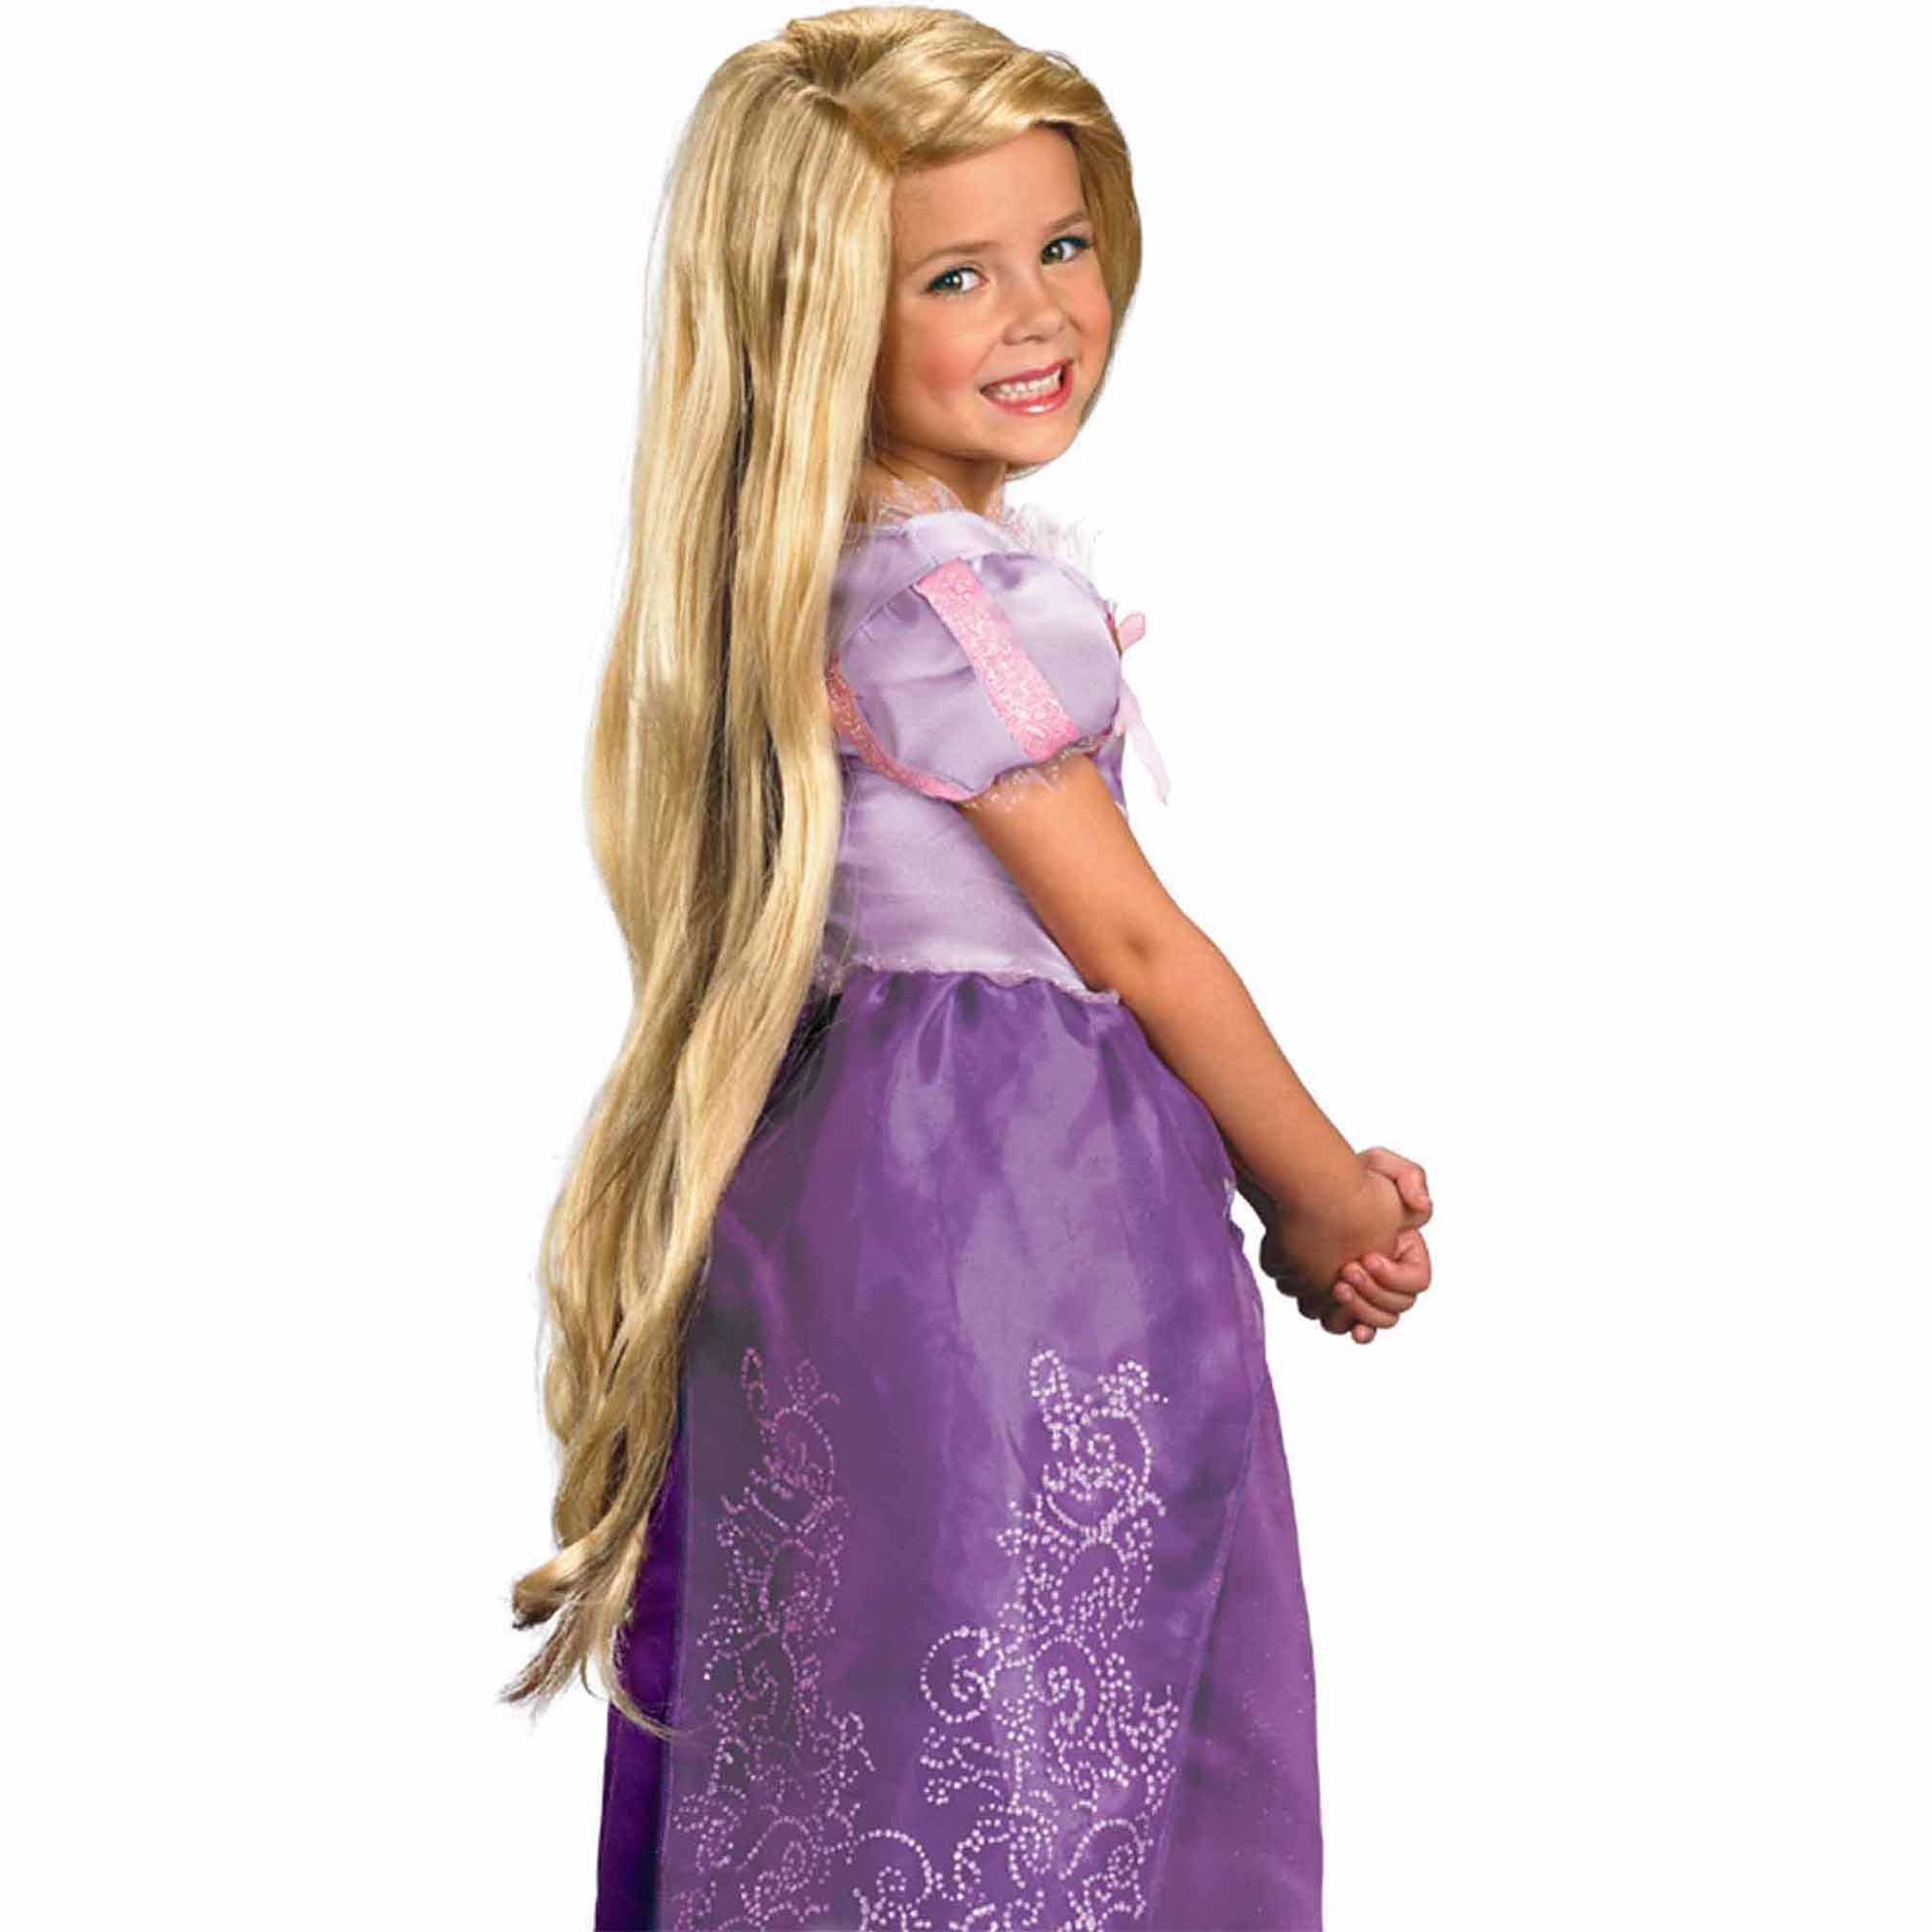 Party Hair's Children's Rapunzel Wig, Princess Wig, long blonde wig, Repunzel Tangled by Party Hair